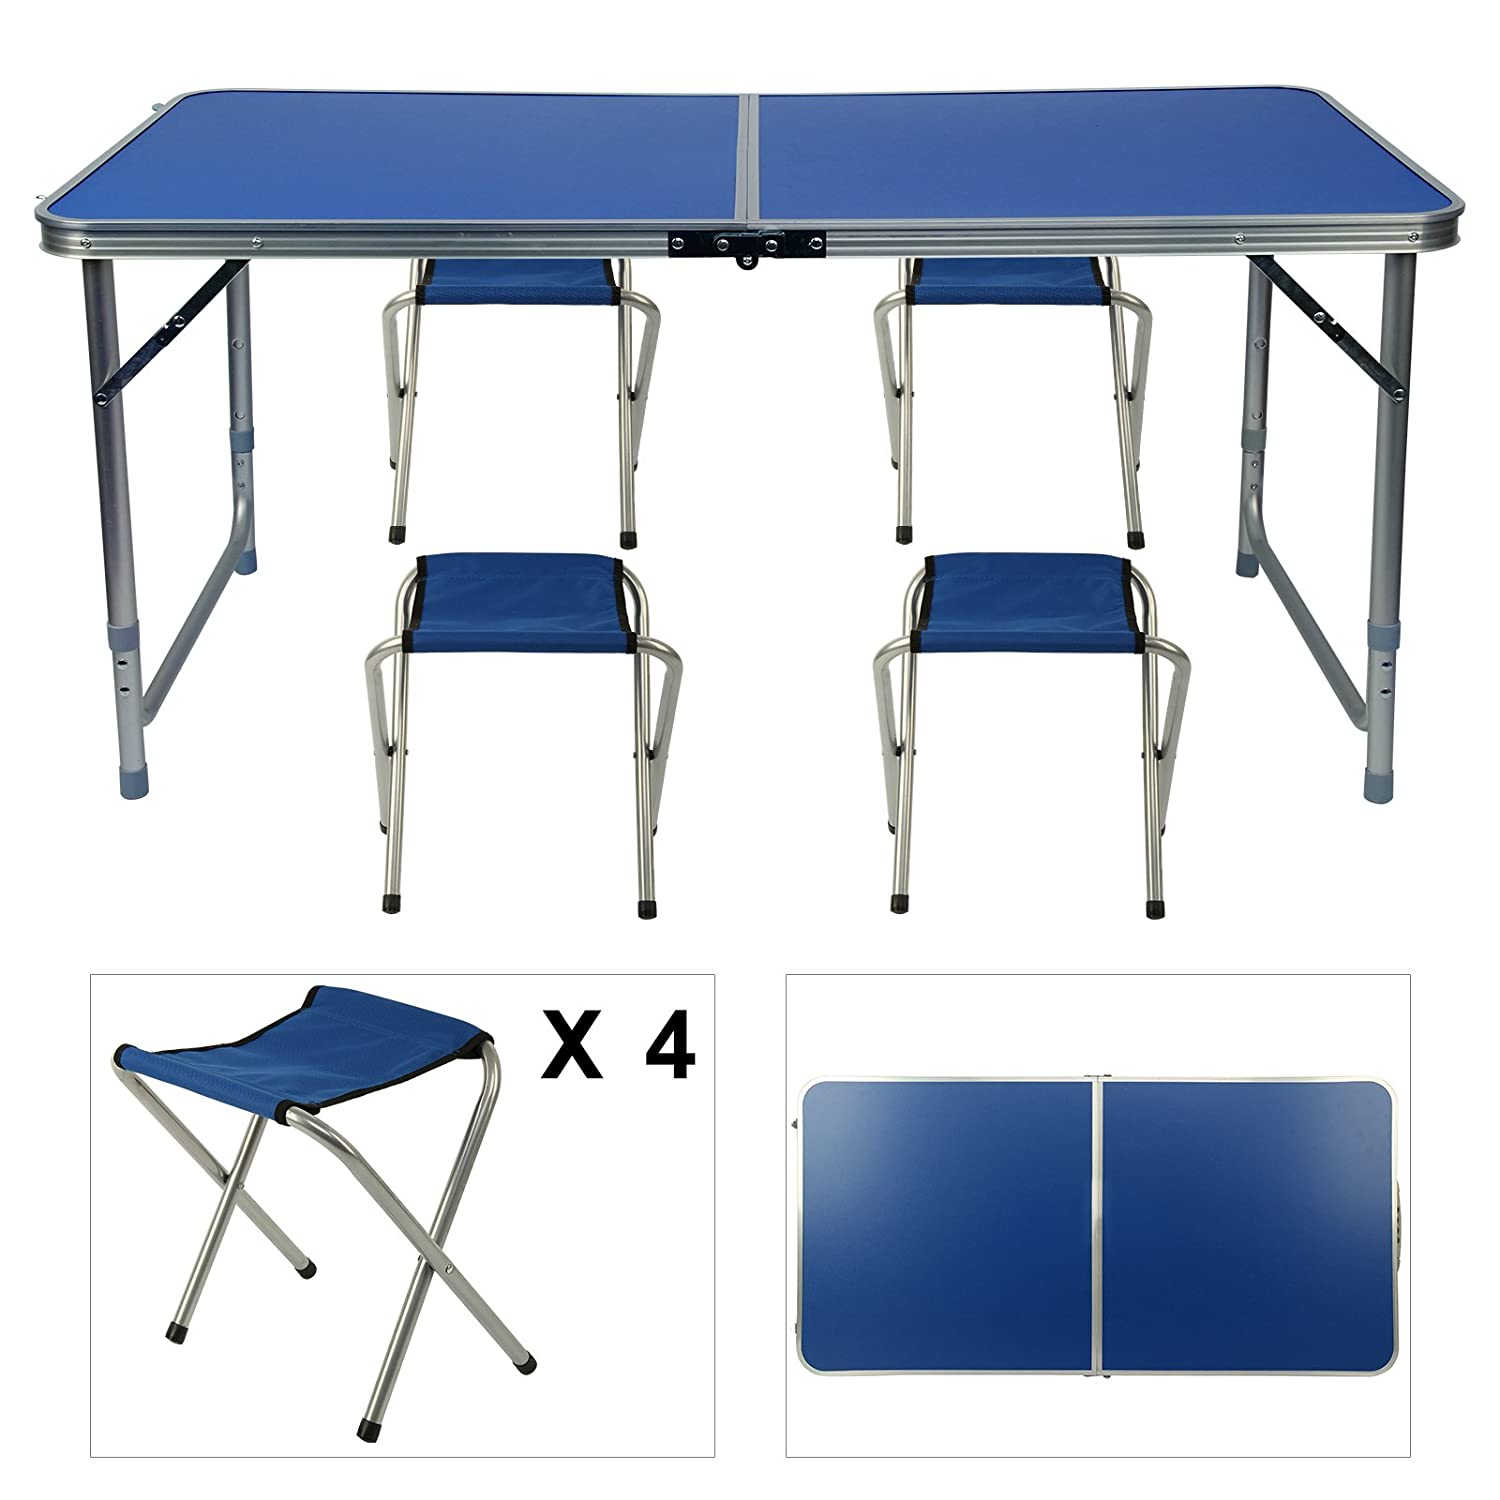 DHOUTDOORS 1.2M Aluminum Folding Table Sets Adjustable Garden Party Kitche Picnic Camping Table and Stool for Indoor Outdoor Activivities oem